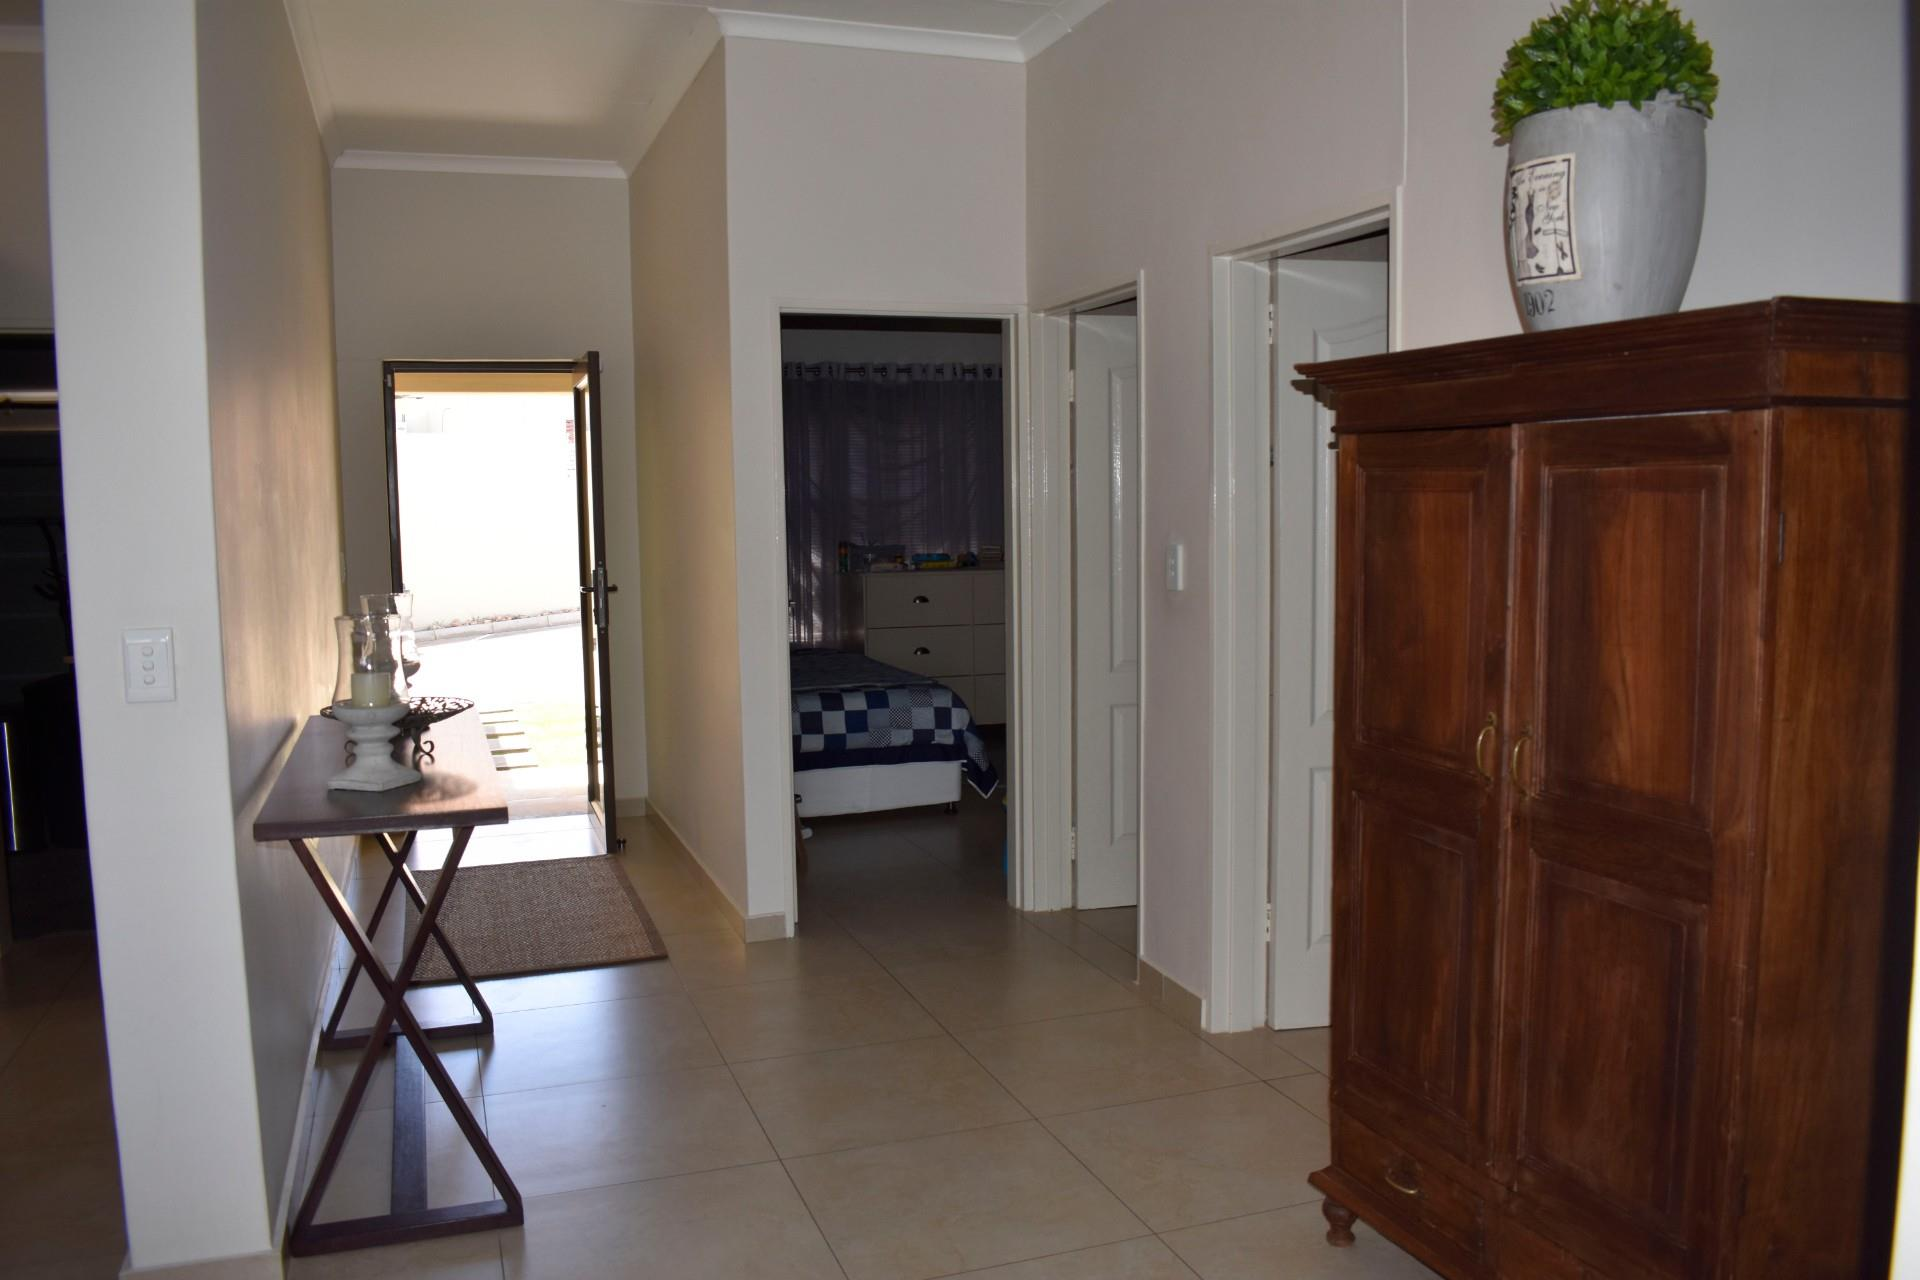 2 Bedroom Town house For Sale in Avis